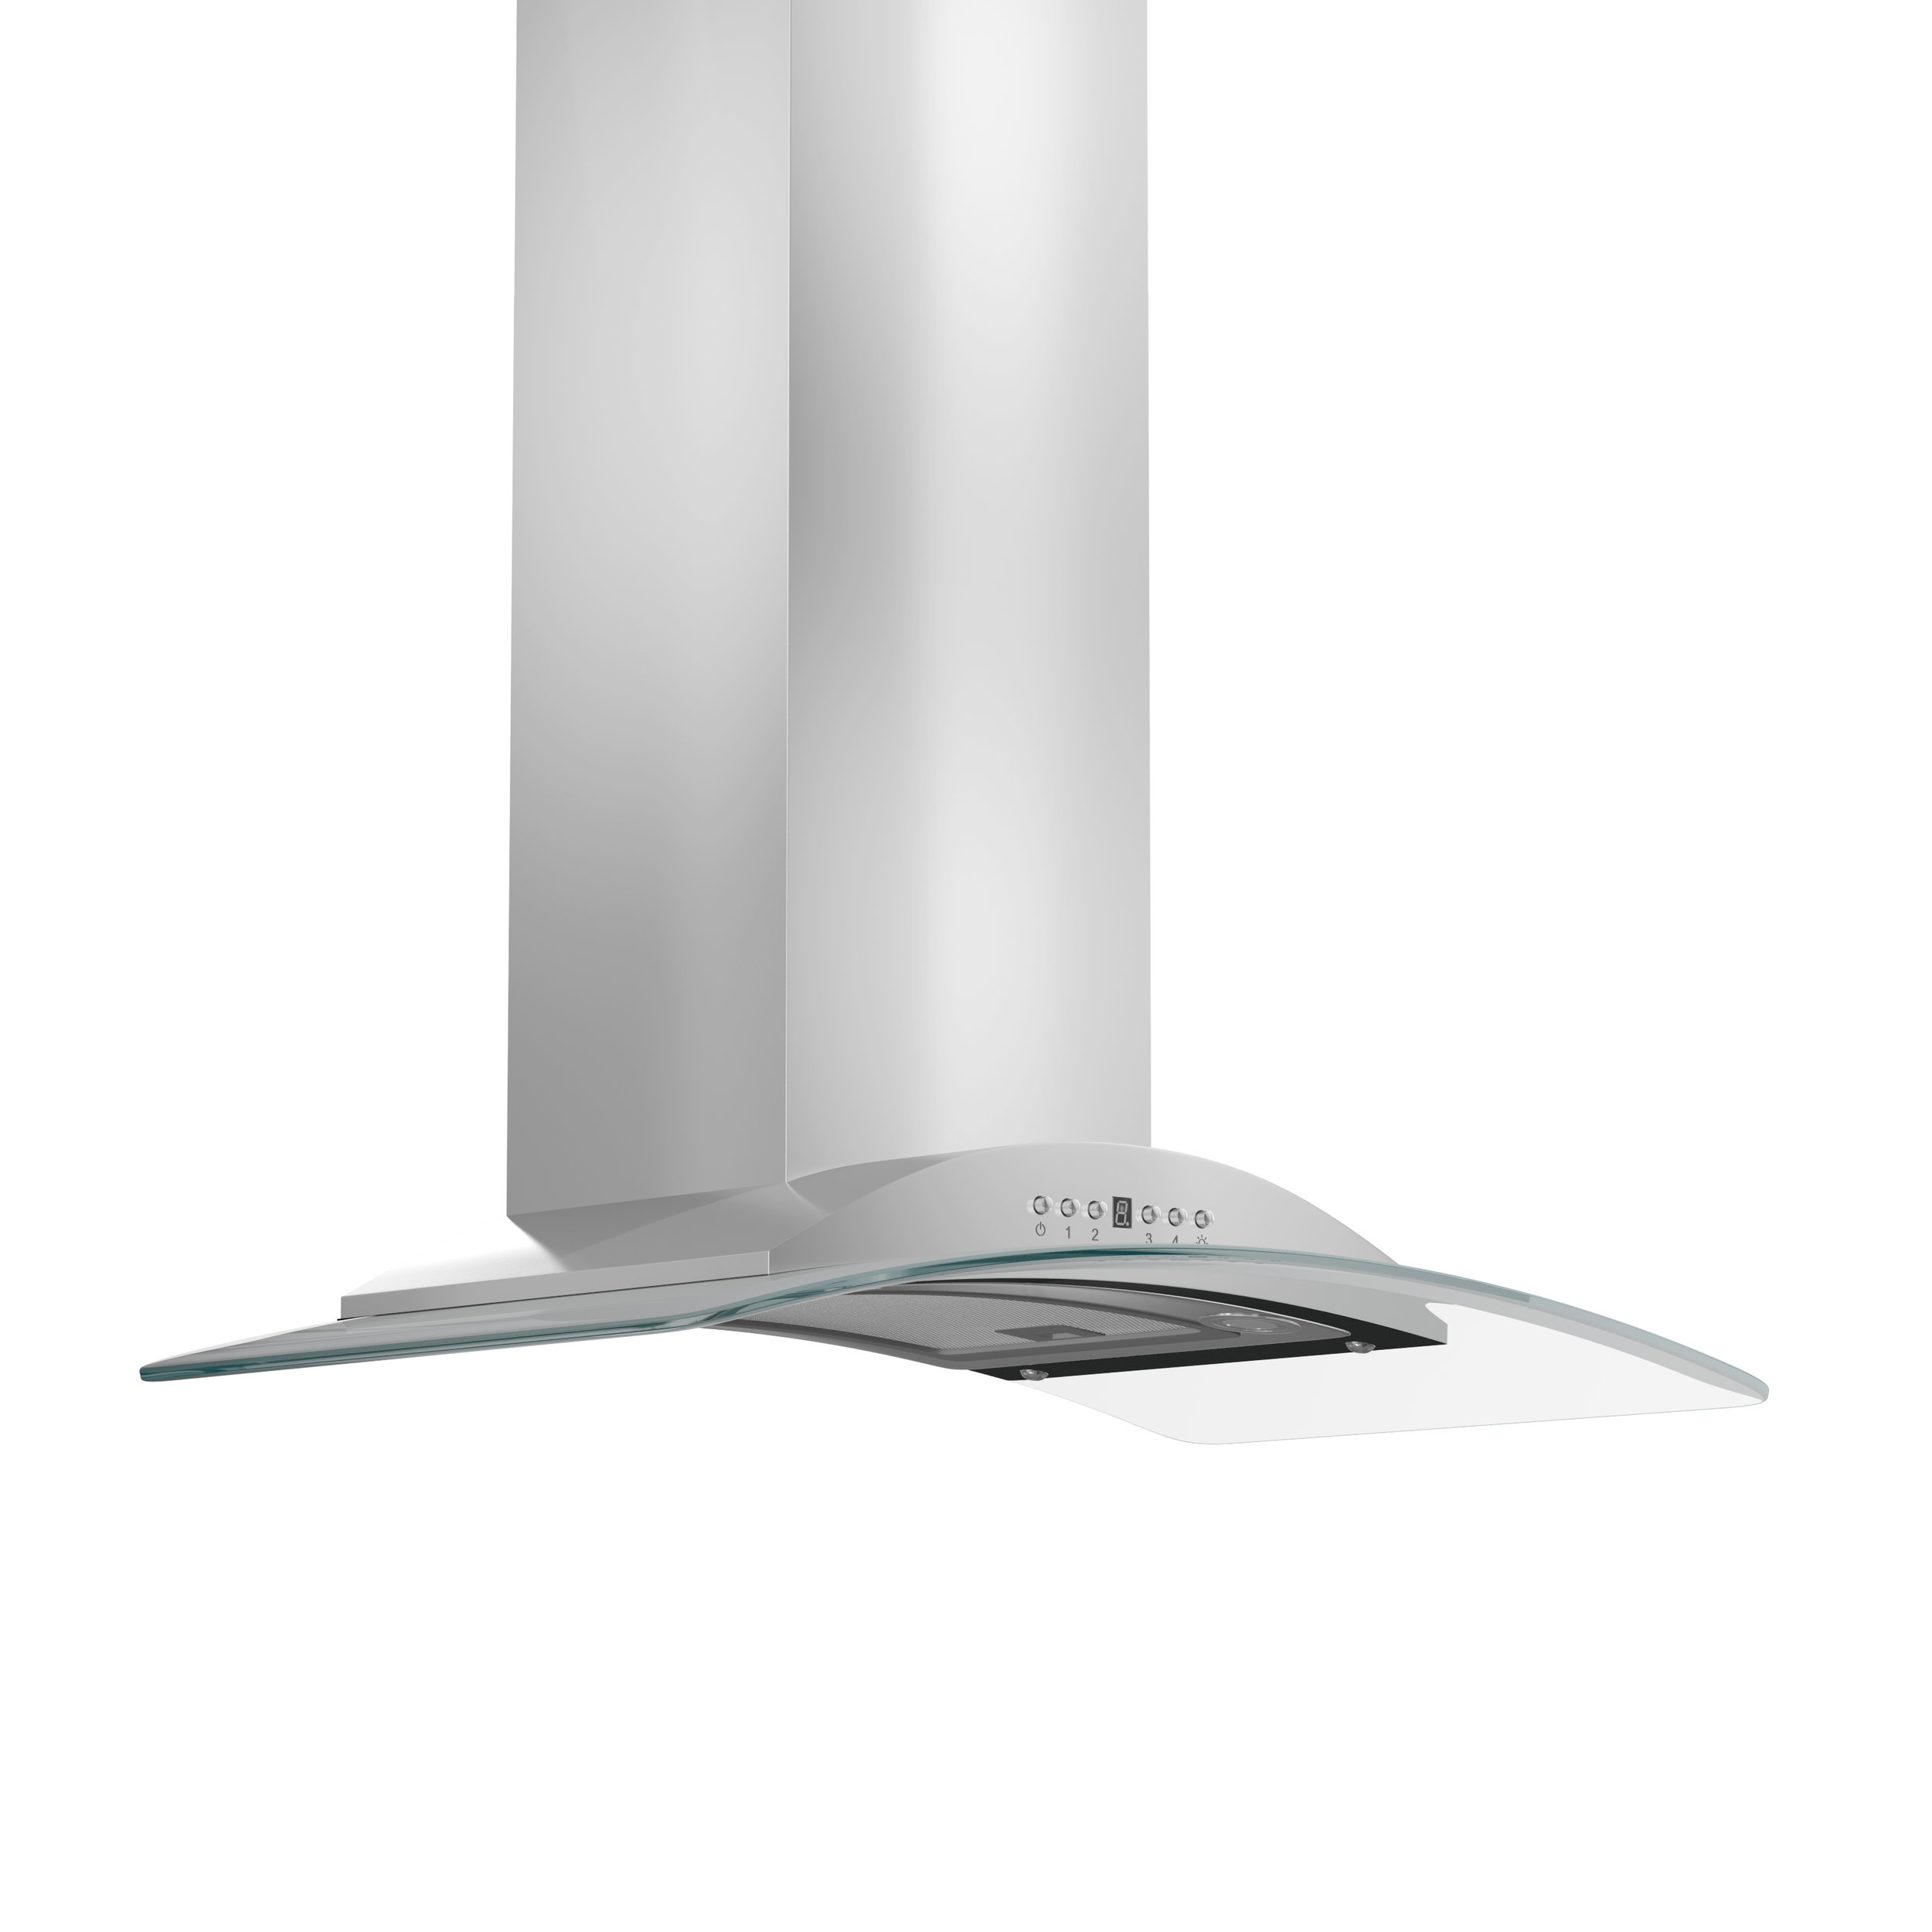 zline-stainless-steel-wall-mounted-range-hood-KN-main.jpg